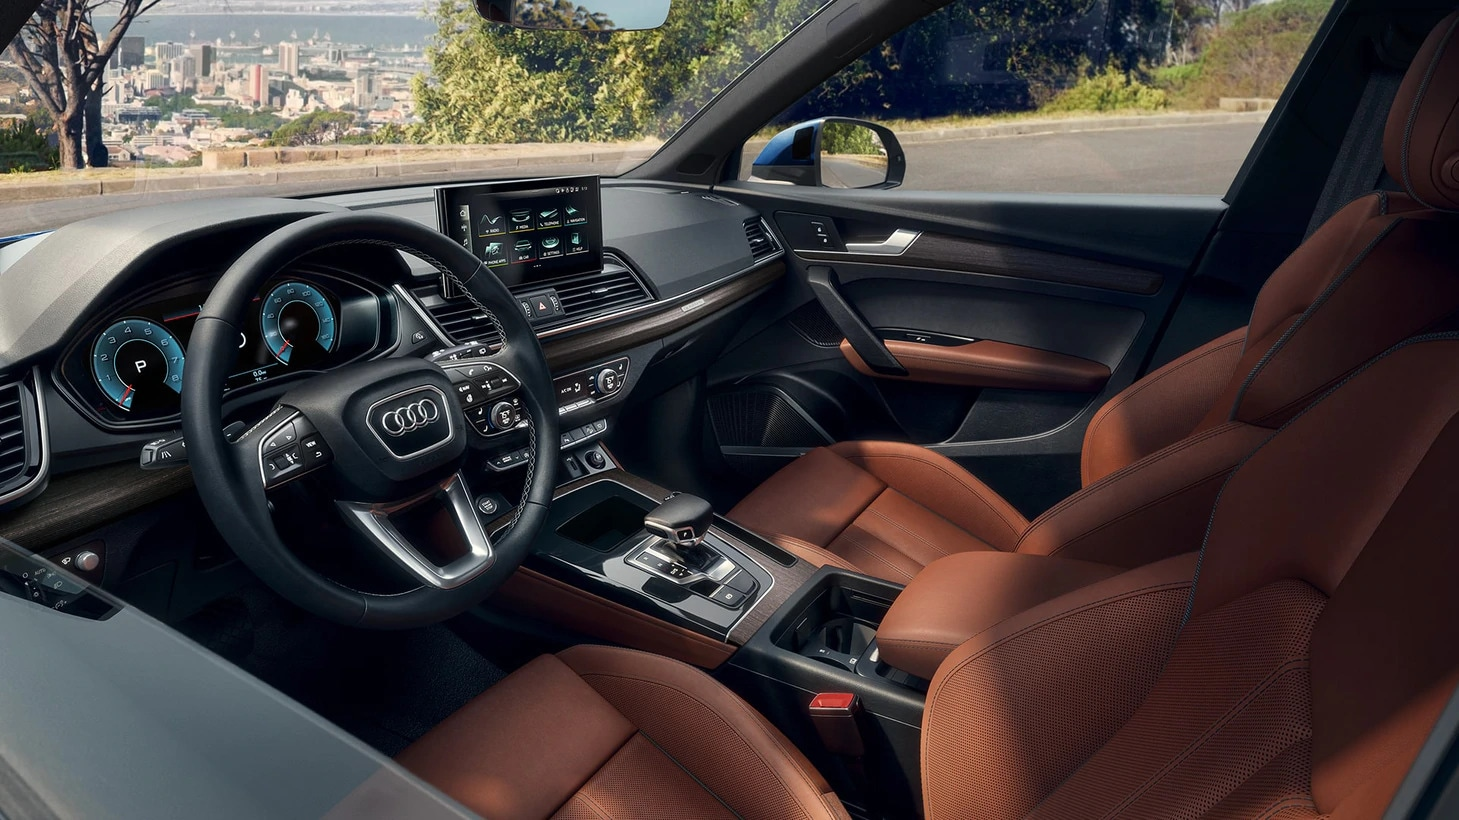 2021 Audi Q5 interior in available Okapi Brown with Granite Gray stitching